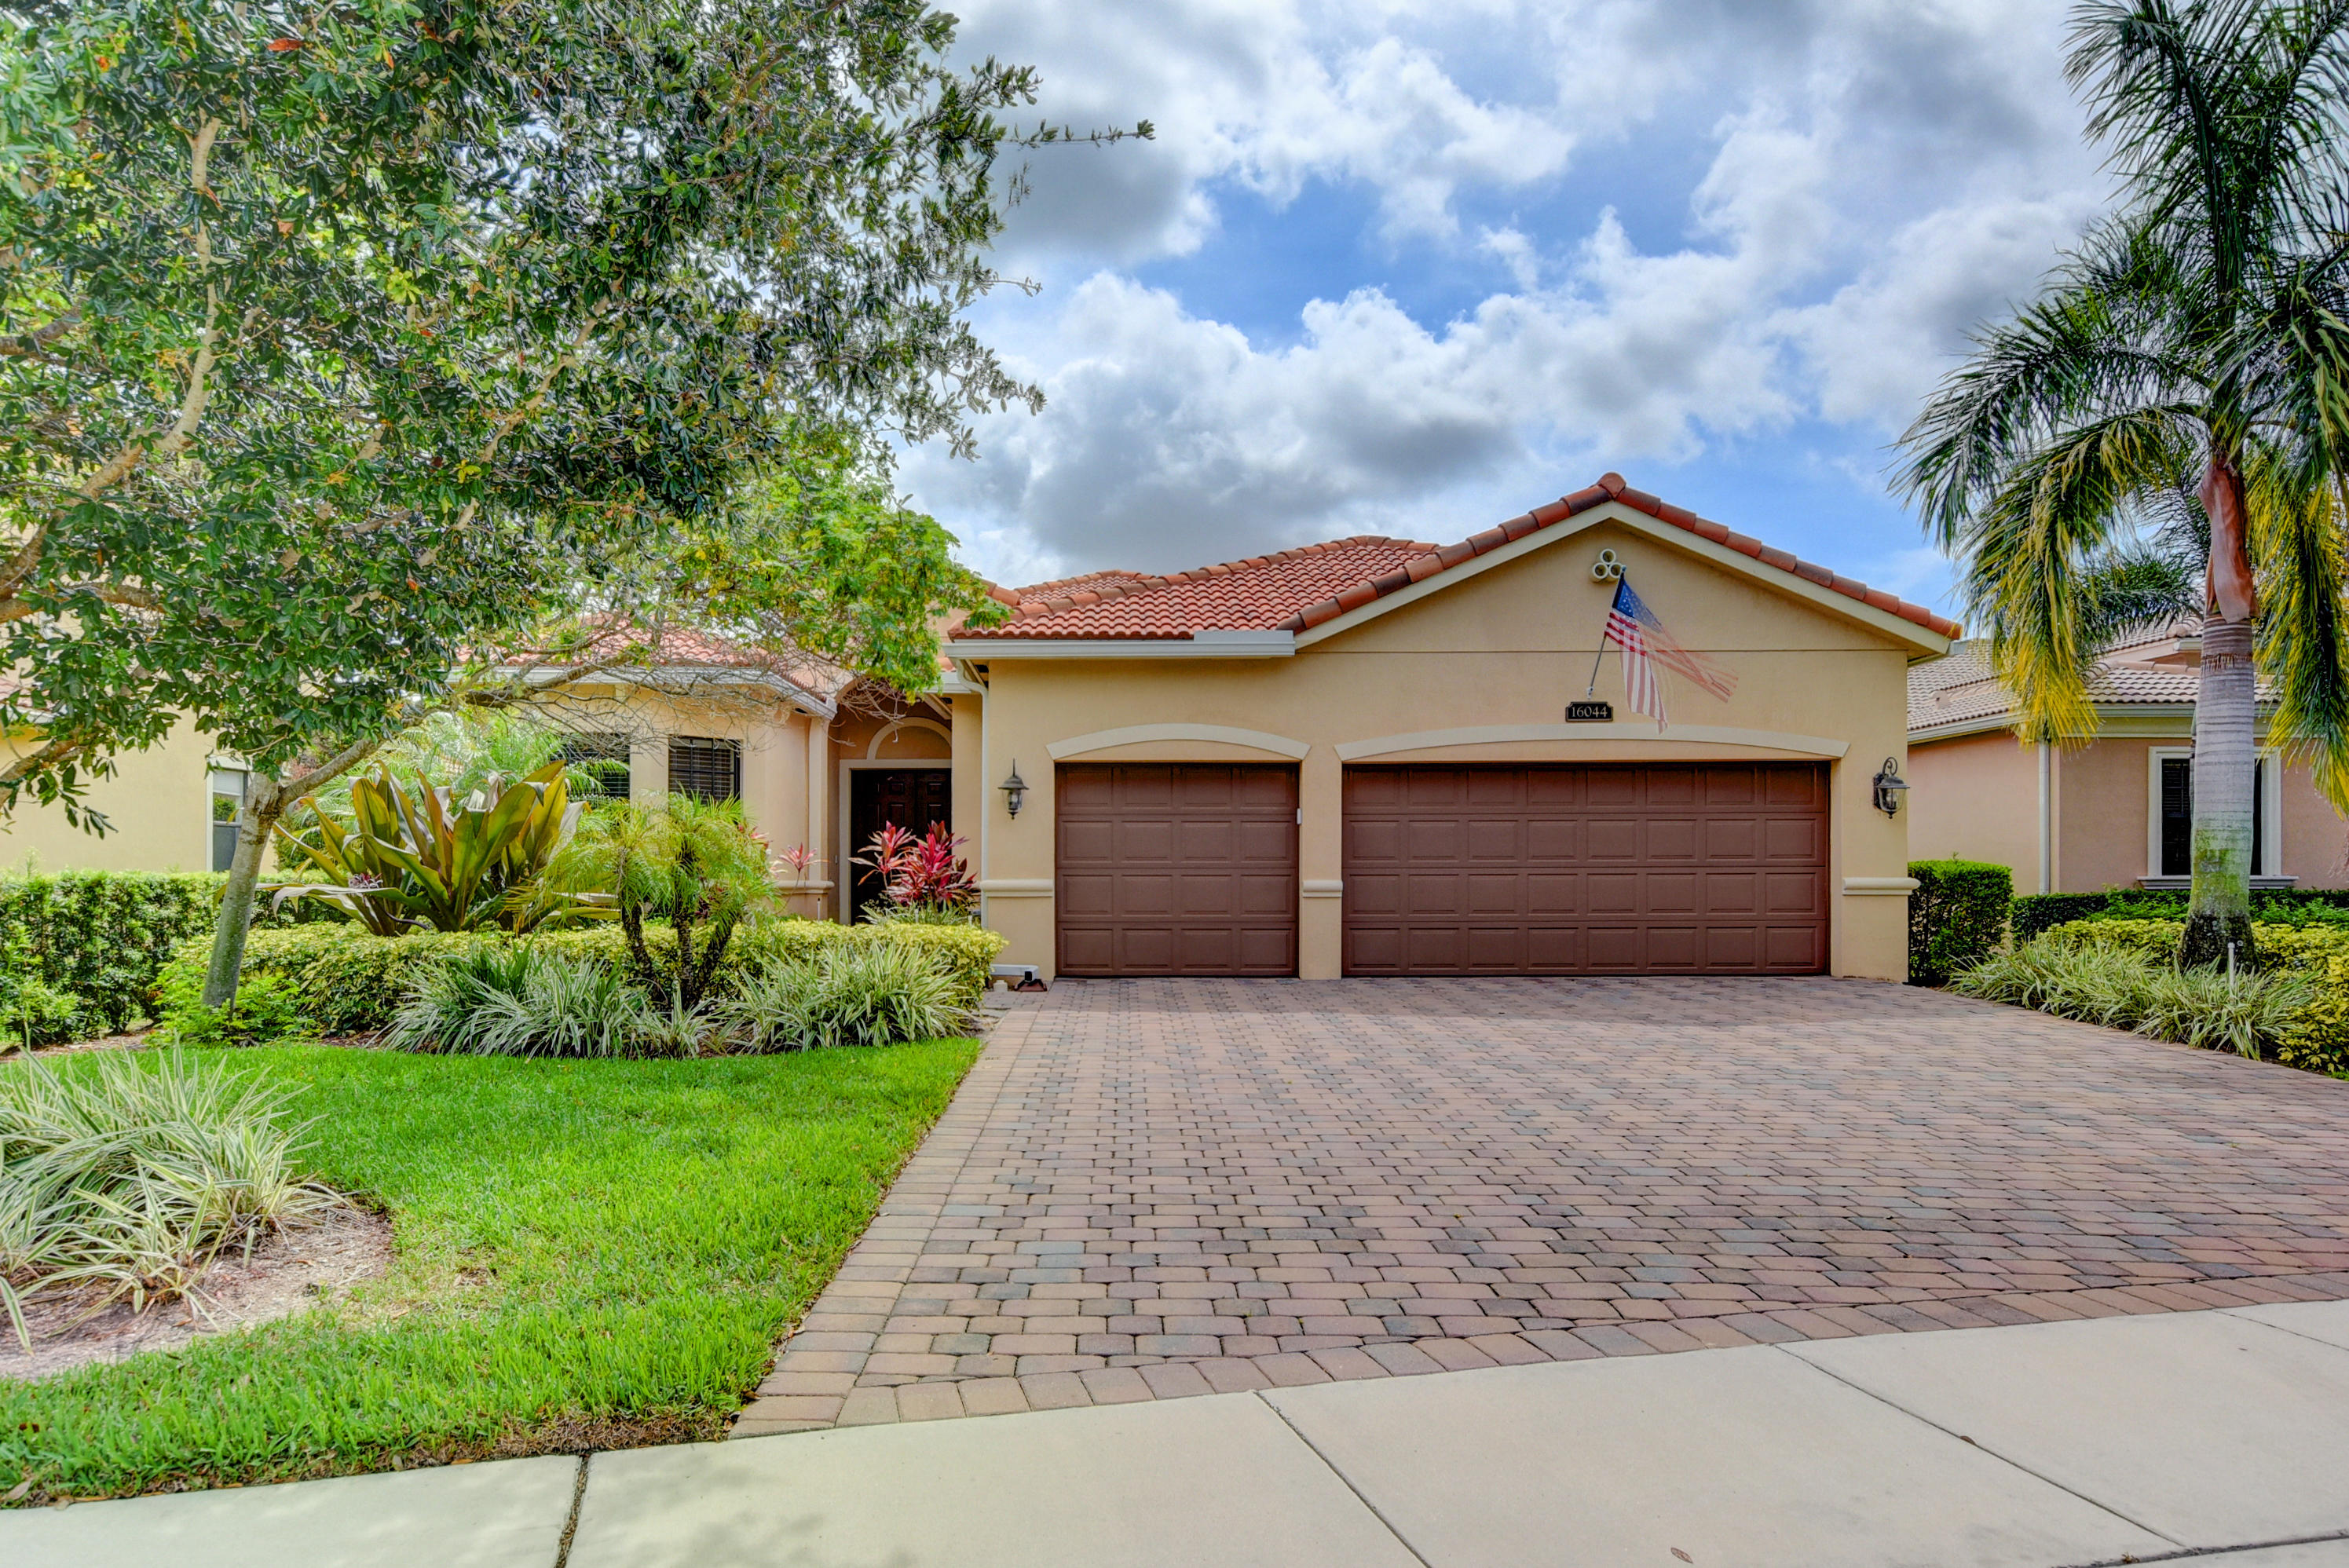 Home for sale in Casa Bella Delray Beach Florida